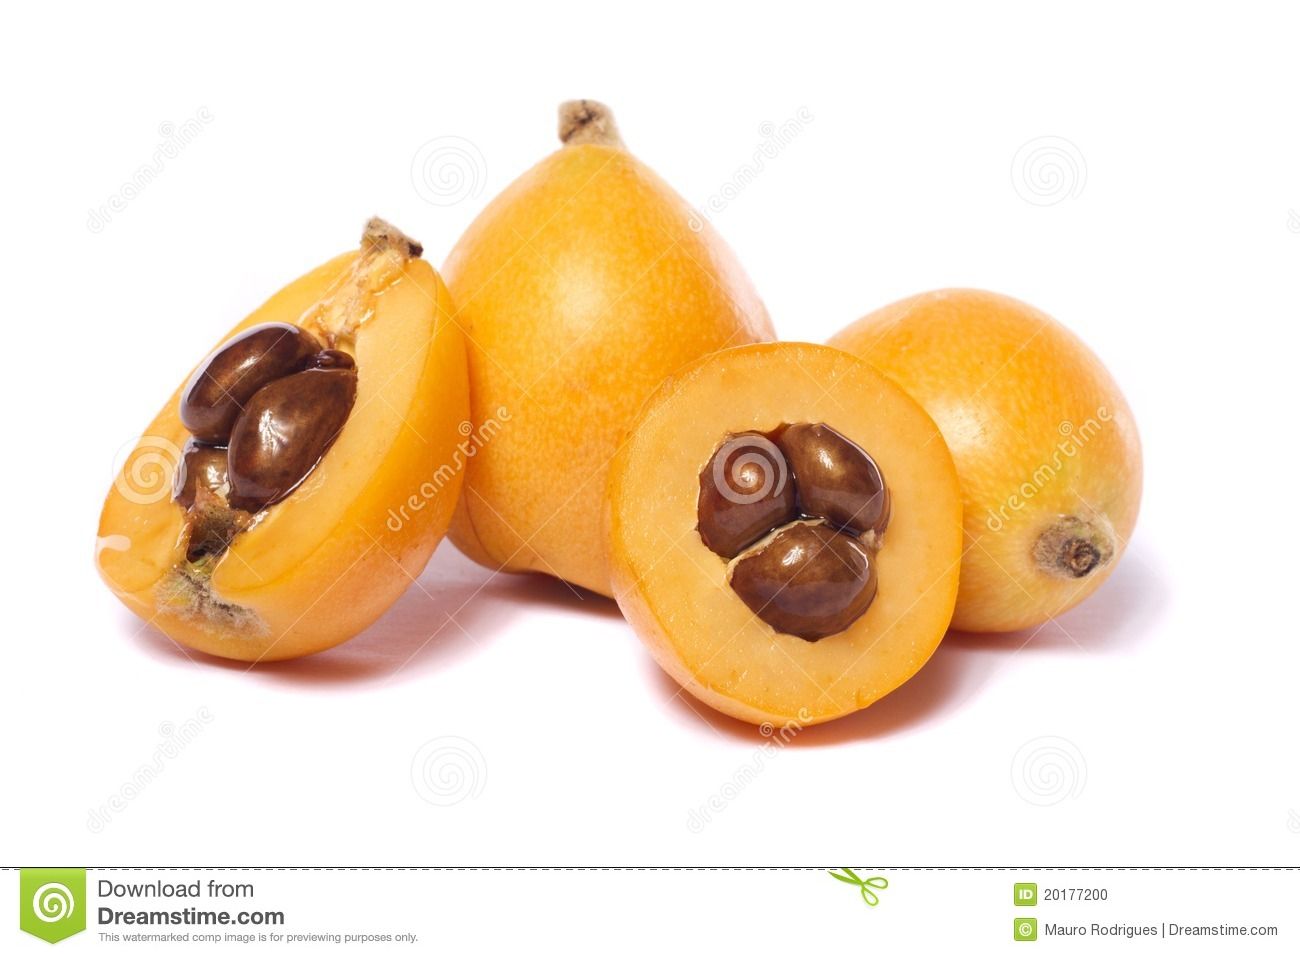 Loquat Berries clipart #12, Download drawings